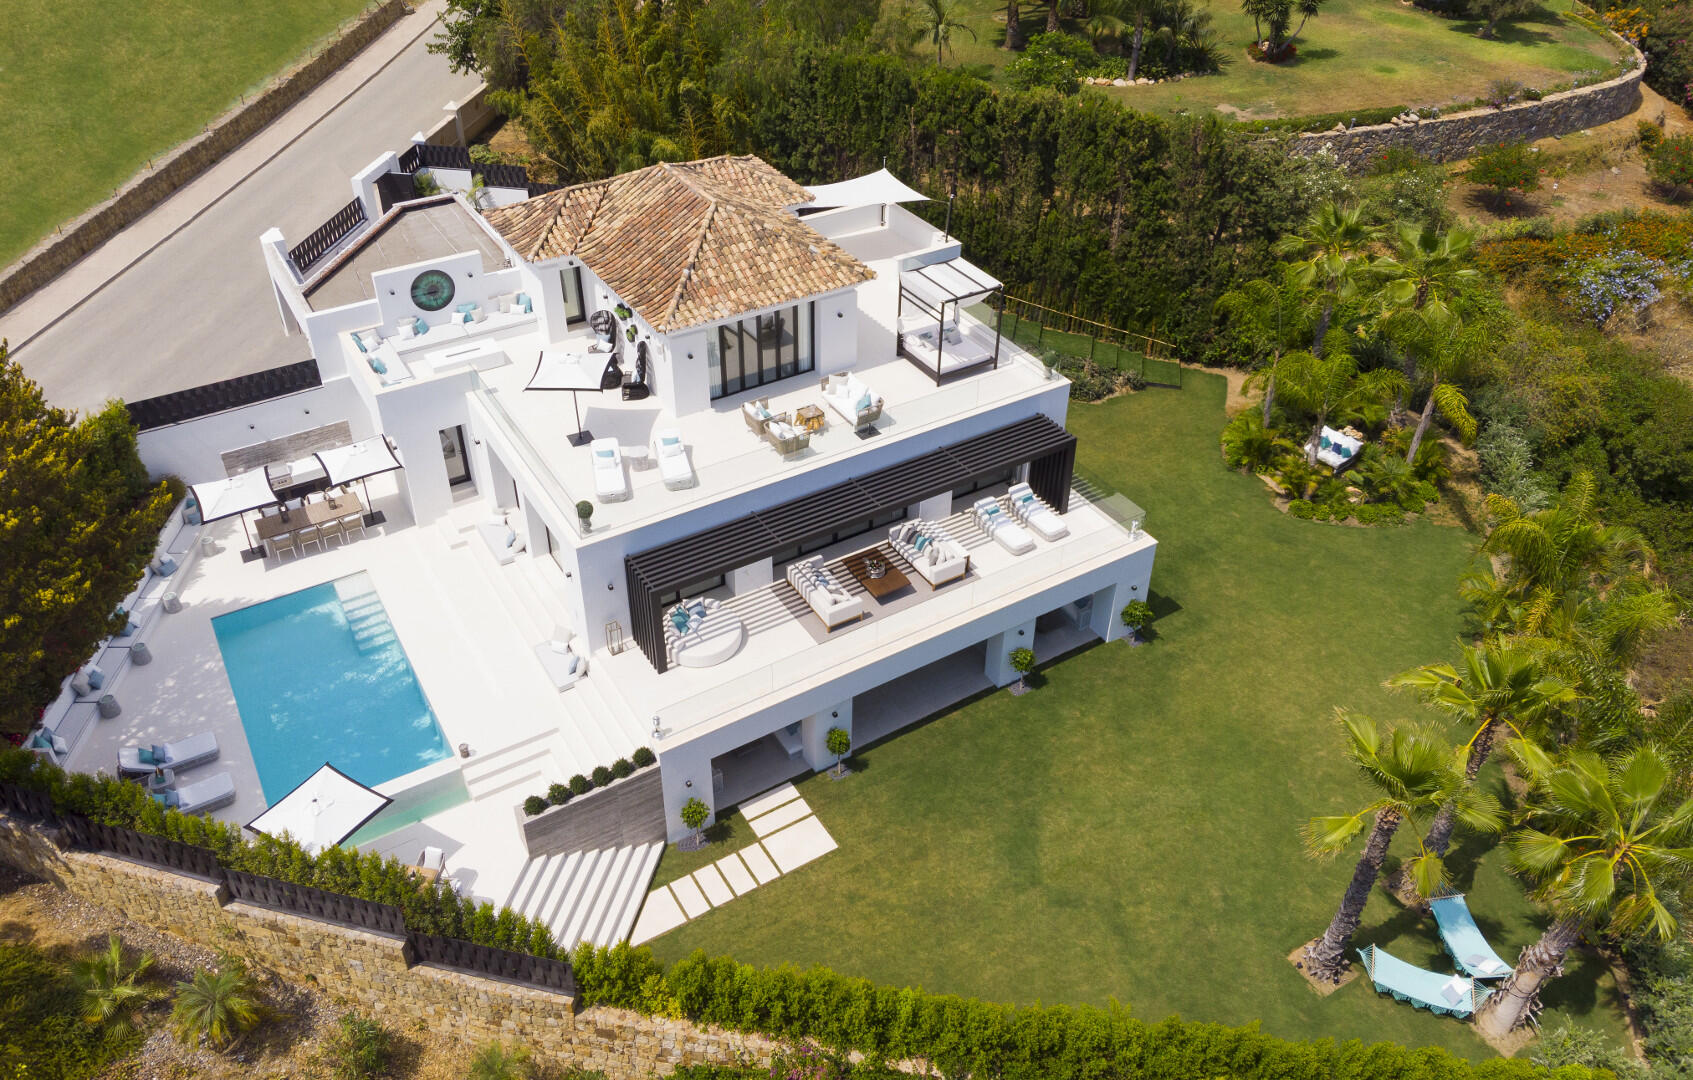 Contemporary High Standard Villa for sale with Golf and Sea views in the highly sought-after area of Los Naranjos Golf Nueva Andalucia, Marbella